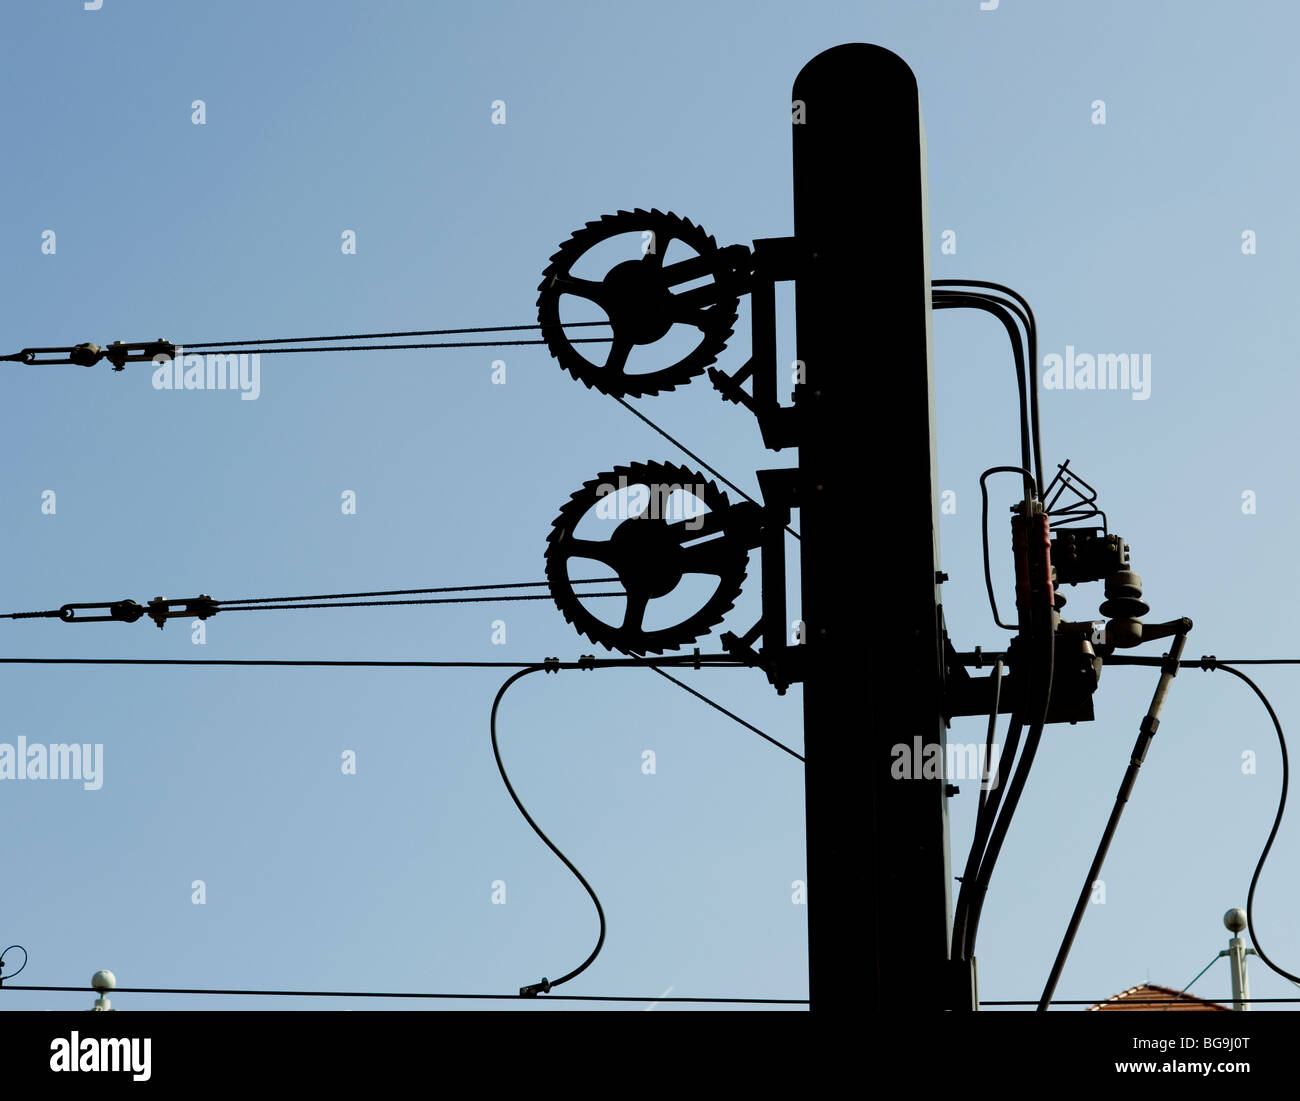 Tram Wires Stock Photos & Tram Wires Stock Images - Alamy